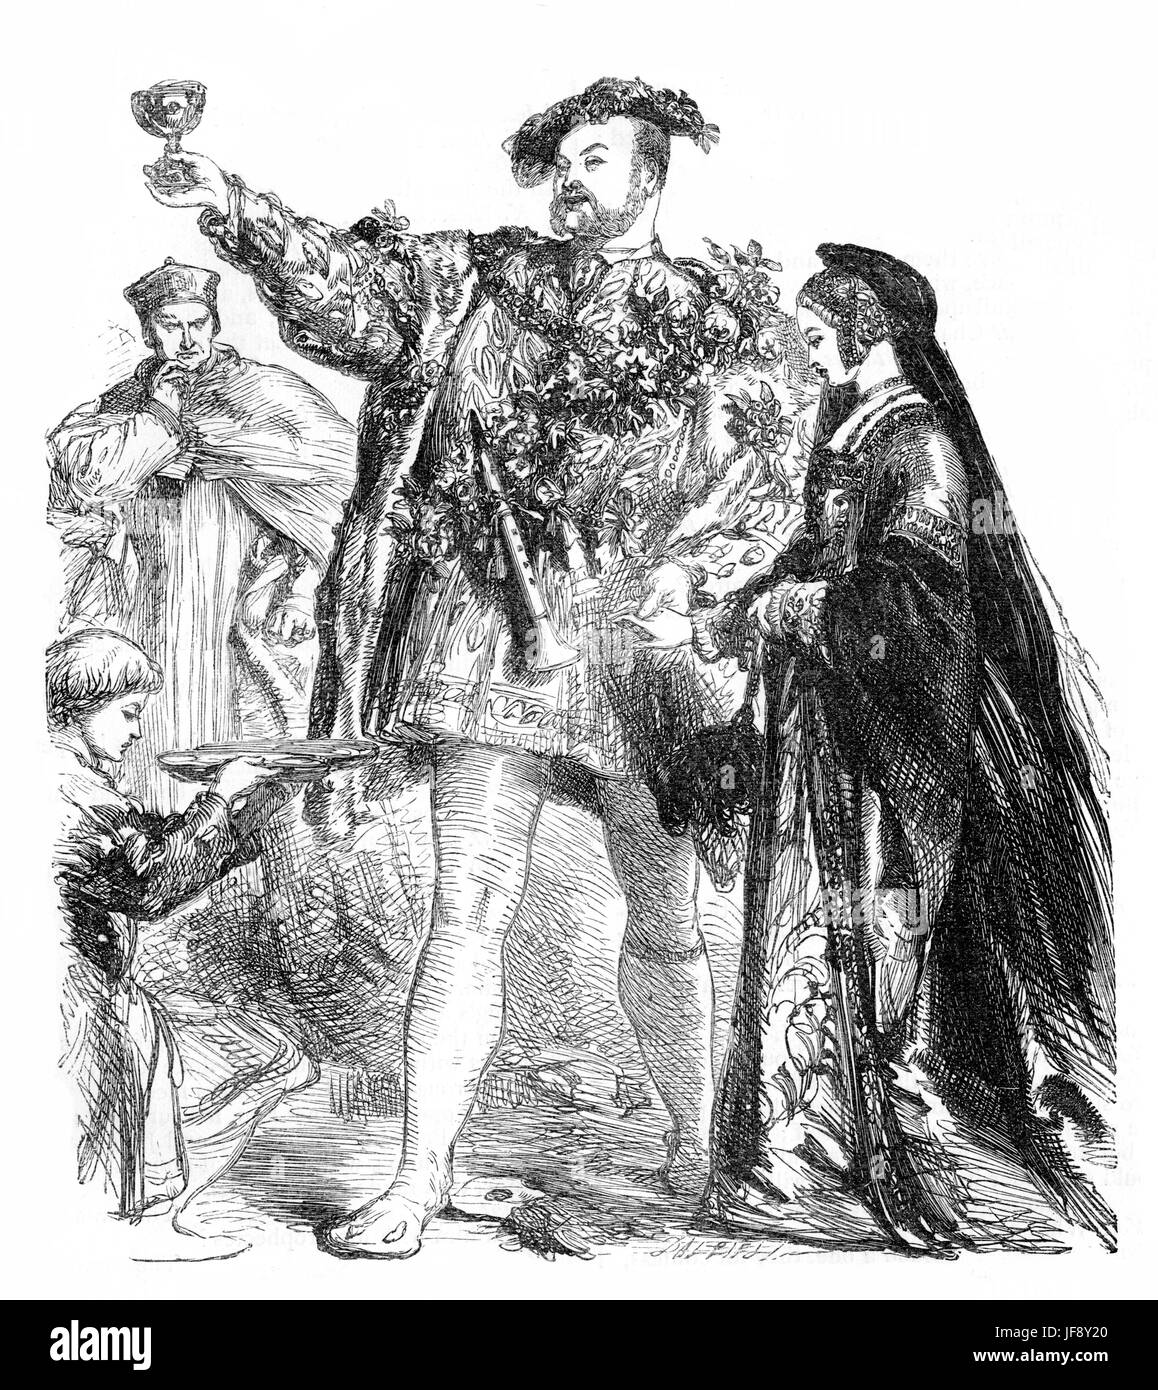 Henry VIII, play by William Shakespeare (26 April 1564 – 23 April 1616). Act 1 scene 4, King Henry and Anne Boleyn. - Stock Image